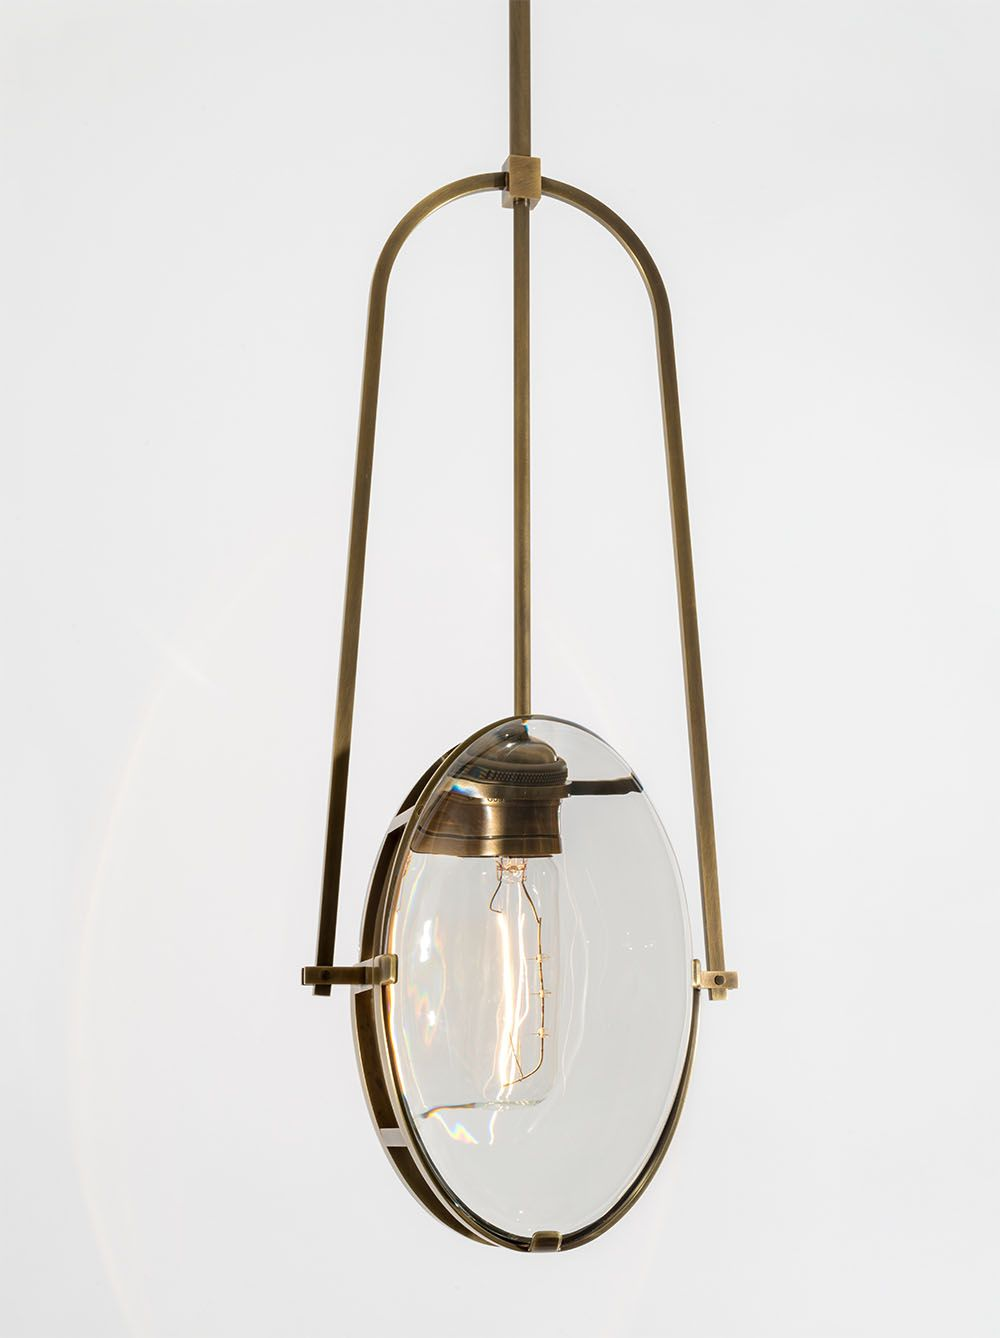 At First Light In 2019 Lamp Design Pendant